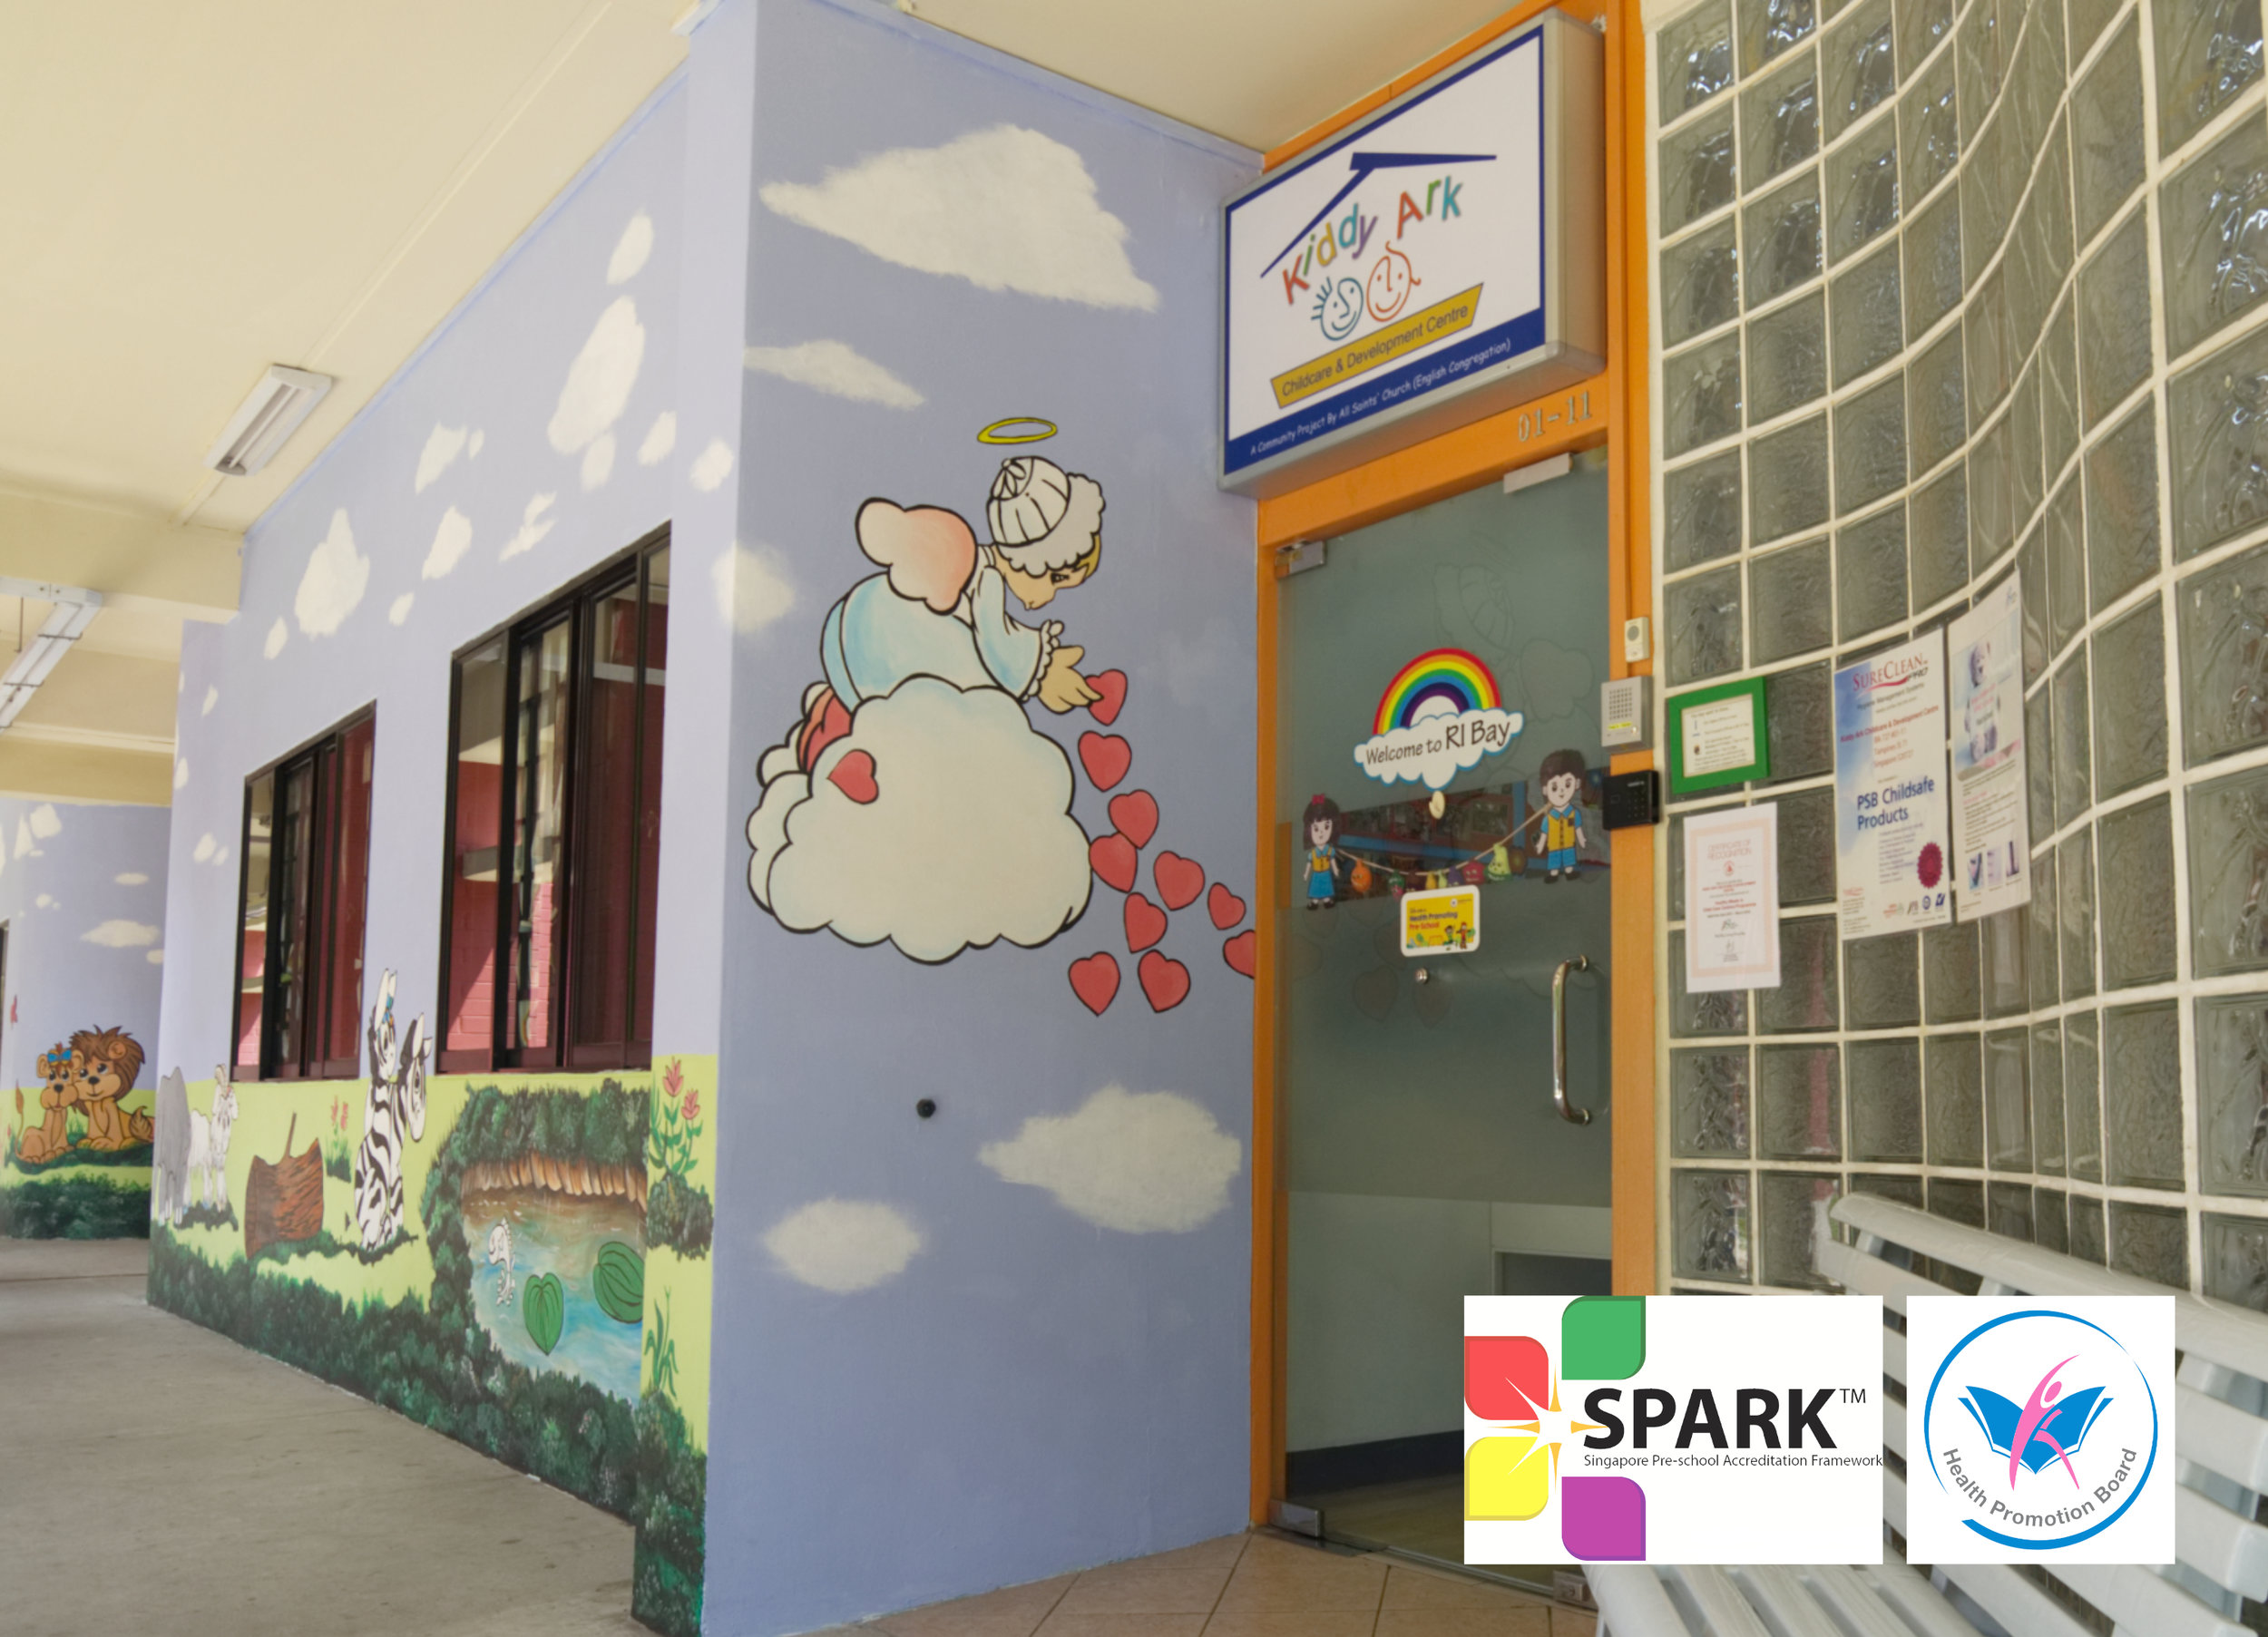 Kiddy ArkChildcare Centre - Our preschool was established in August 2000 by All Saints' Church (English). We are registered with the Early Childhood Development Agency (ECDA), and certified under both the Health Promoting Pre-School (HPPS) Accreditation Framework as well as the Singapore Preschool Accreditation Framework (SPARK).